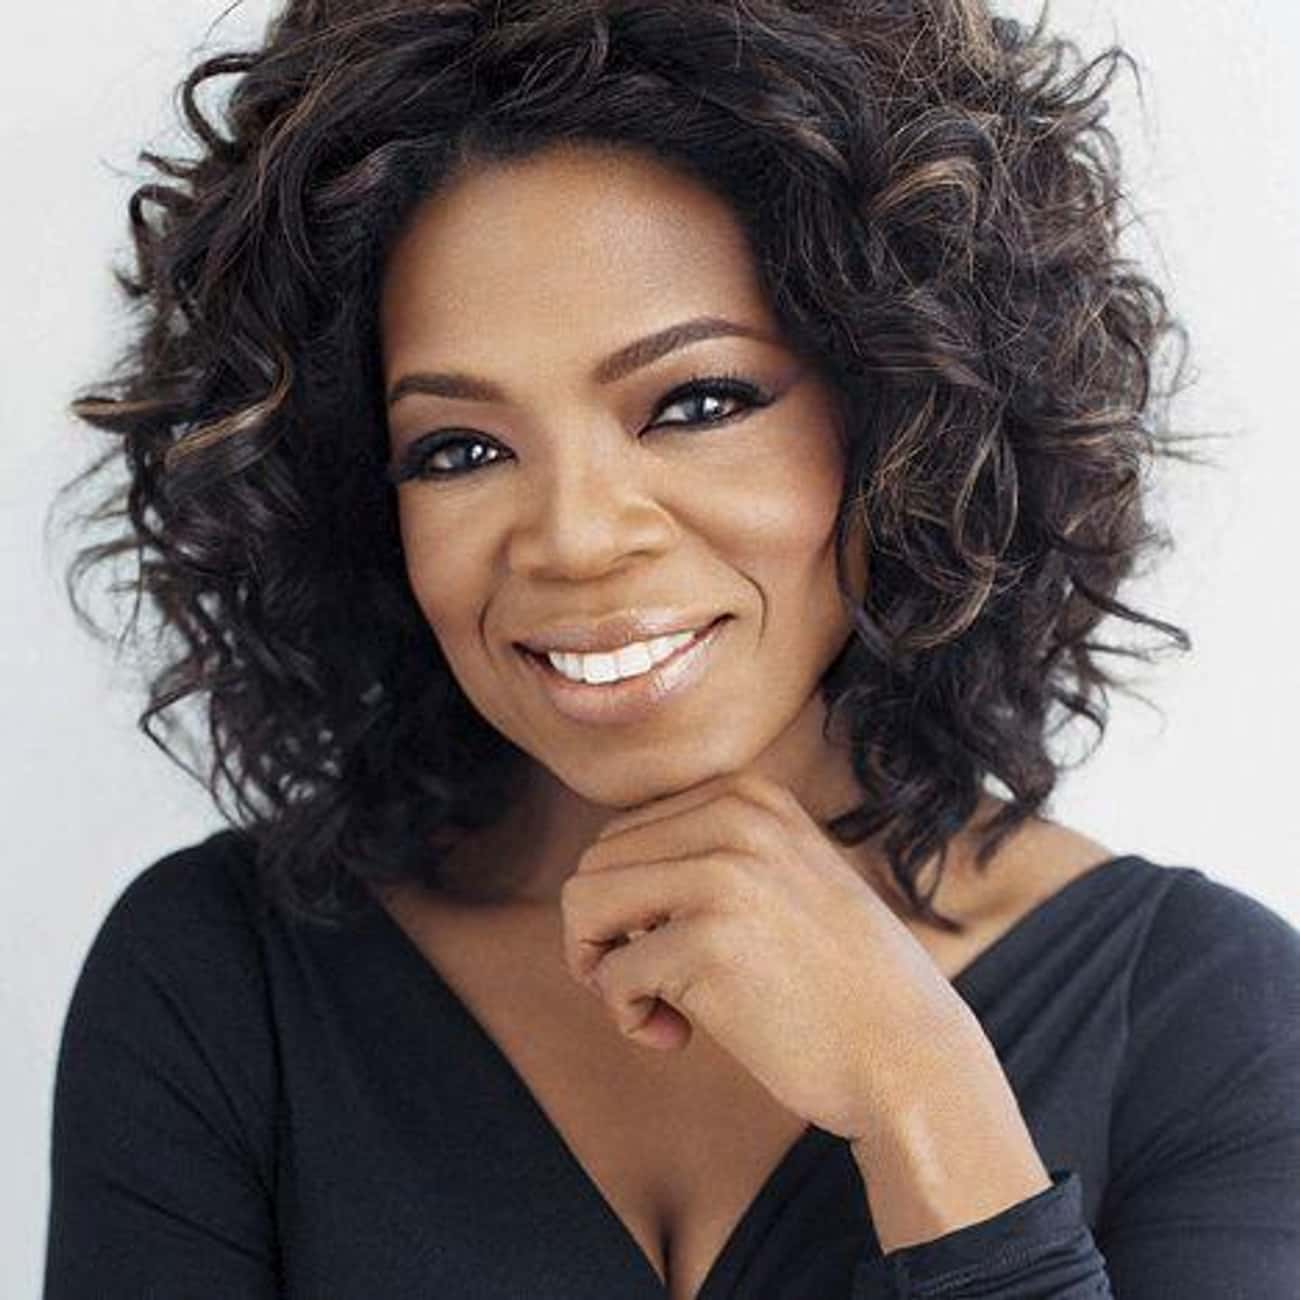 Oprah Winfrey is listed (or ranked) 1 on the list Celebrities Who Made Huge Donations To Colleges